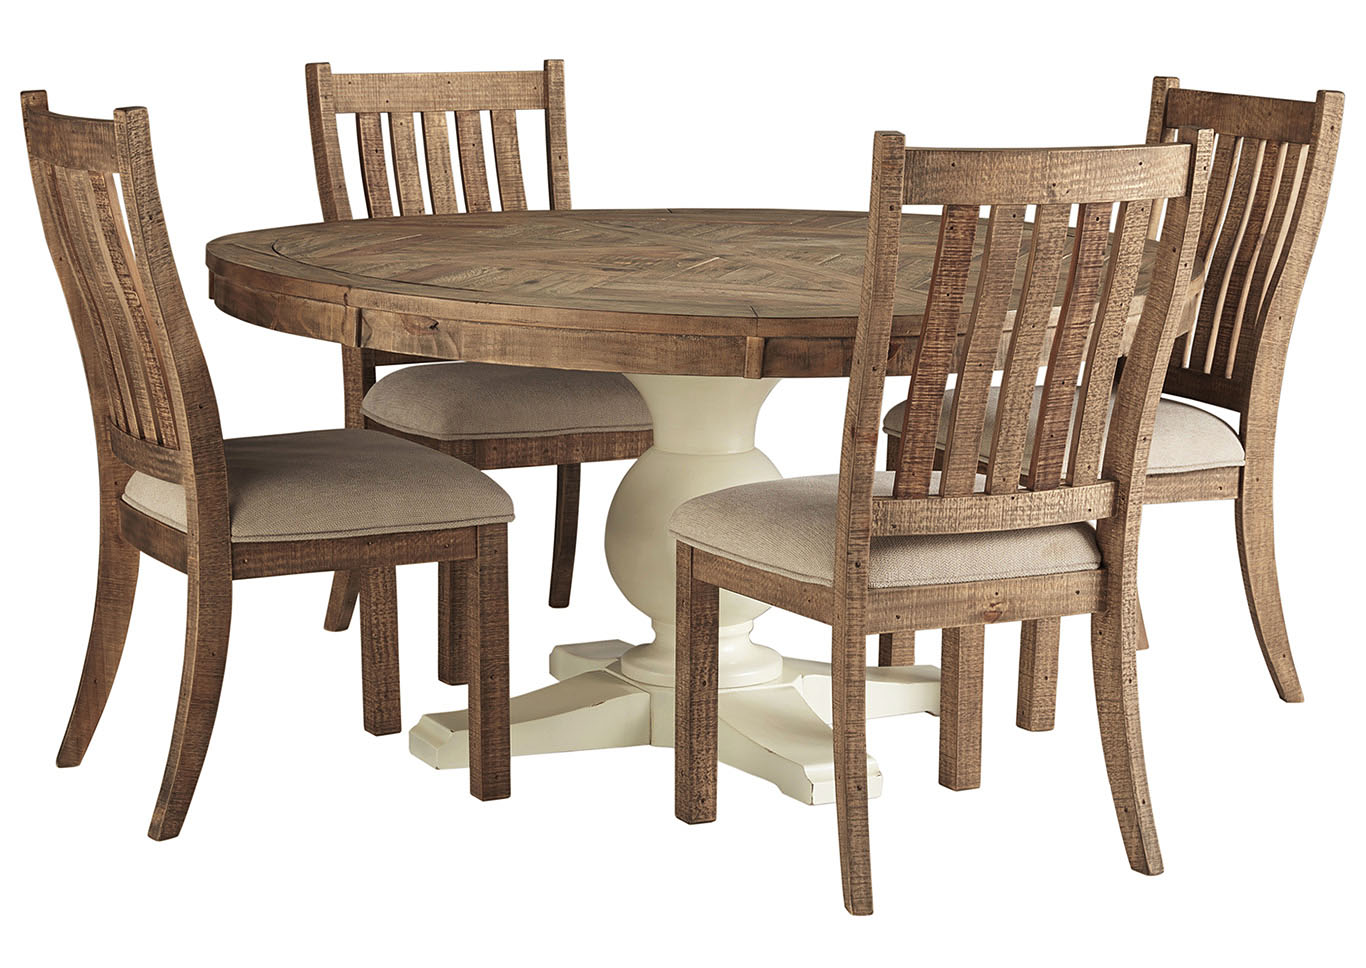 <Grindleburg Round Dining Table w/4 Brown Side Chairs